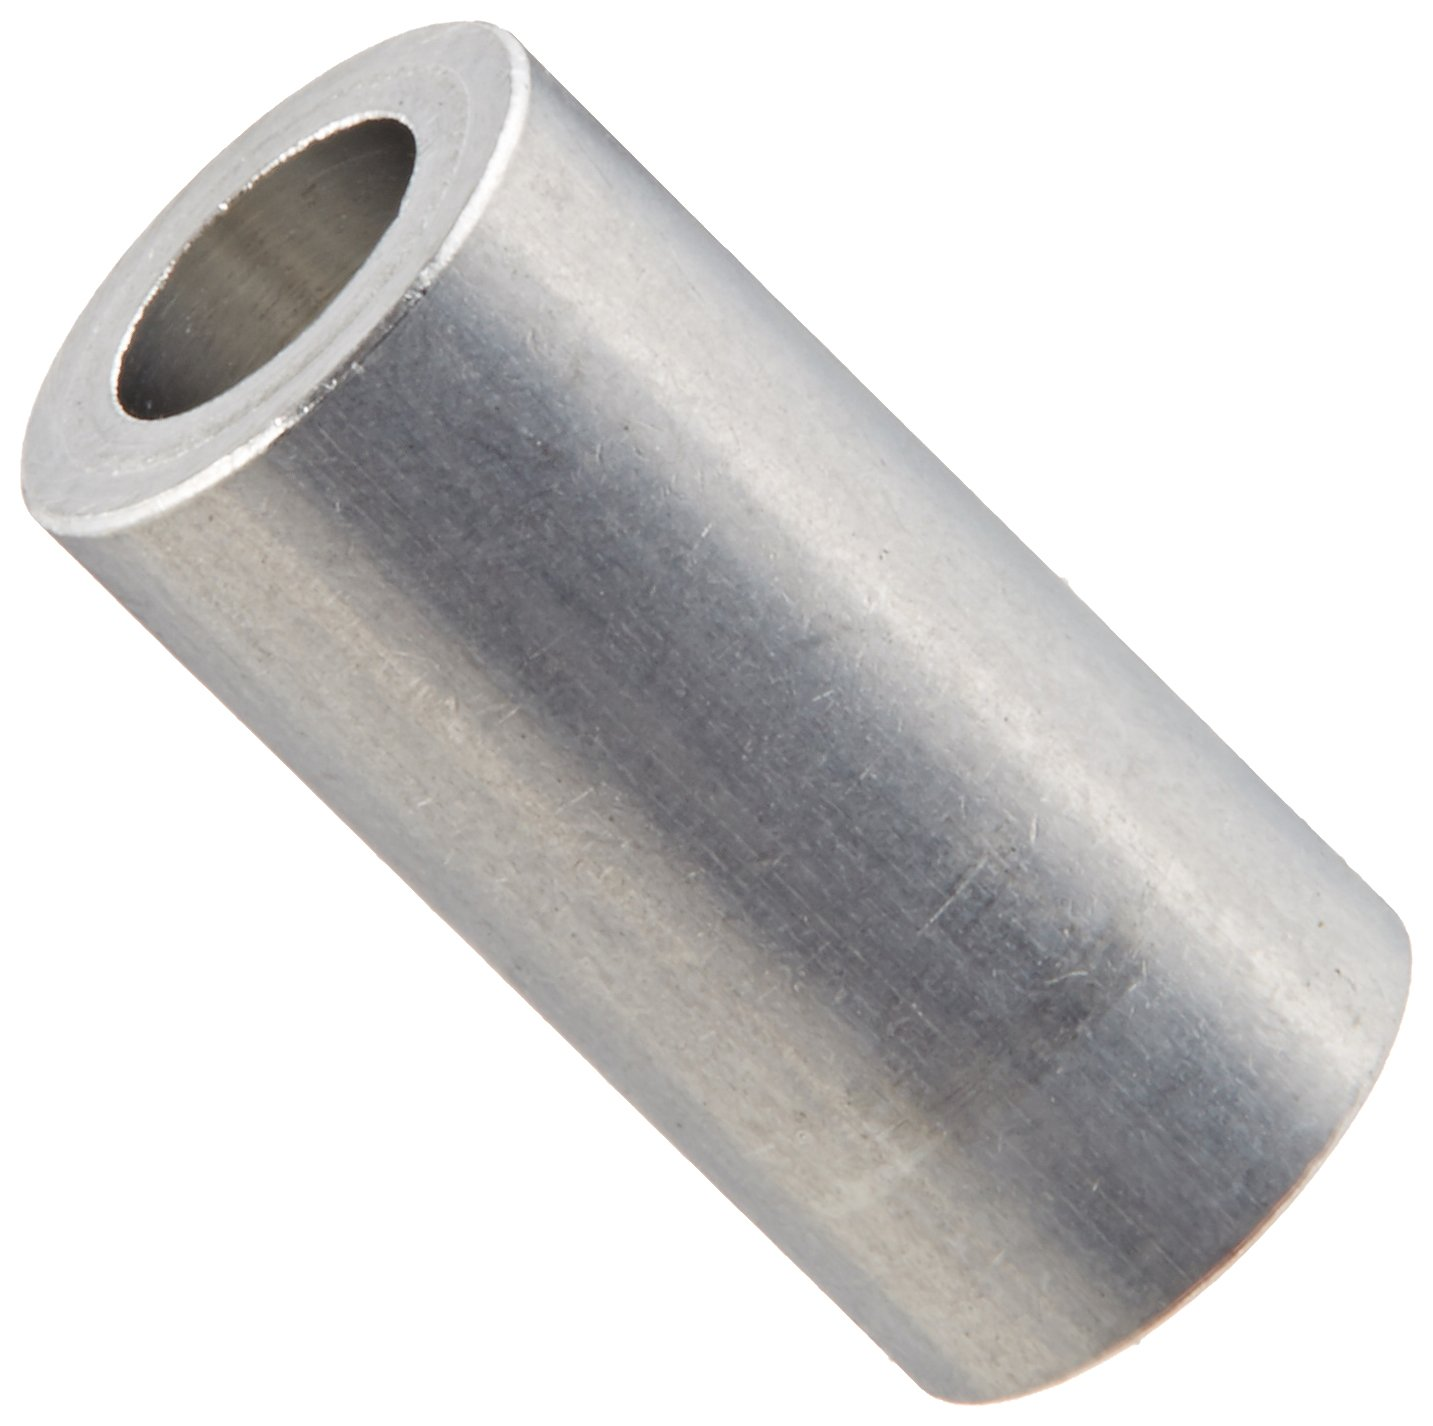 Round Spacer, Aluminum, Plain Finish, #6 Screw Size, 1/4'' OD, 0.14'' ID, 1/2'' Length (Pack of 25)